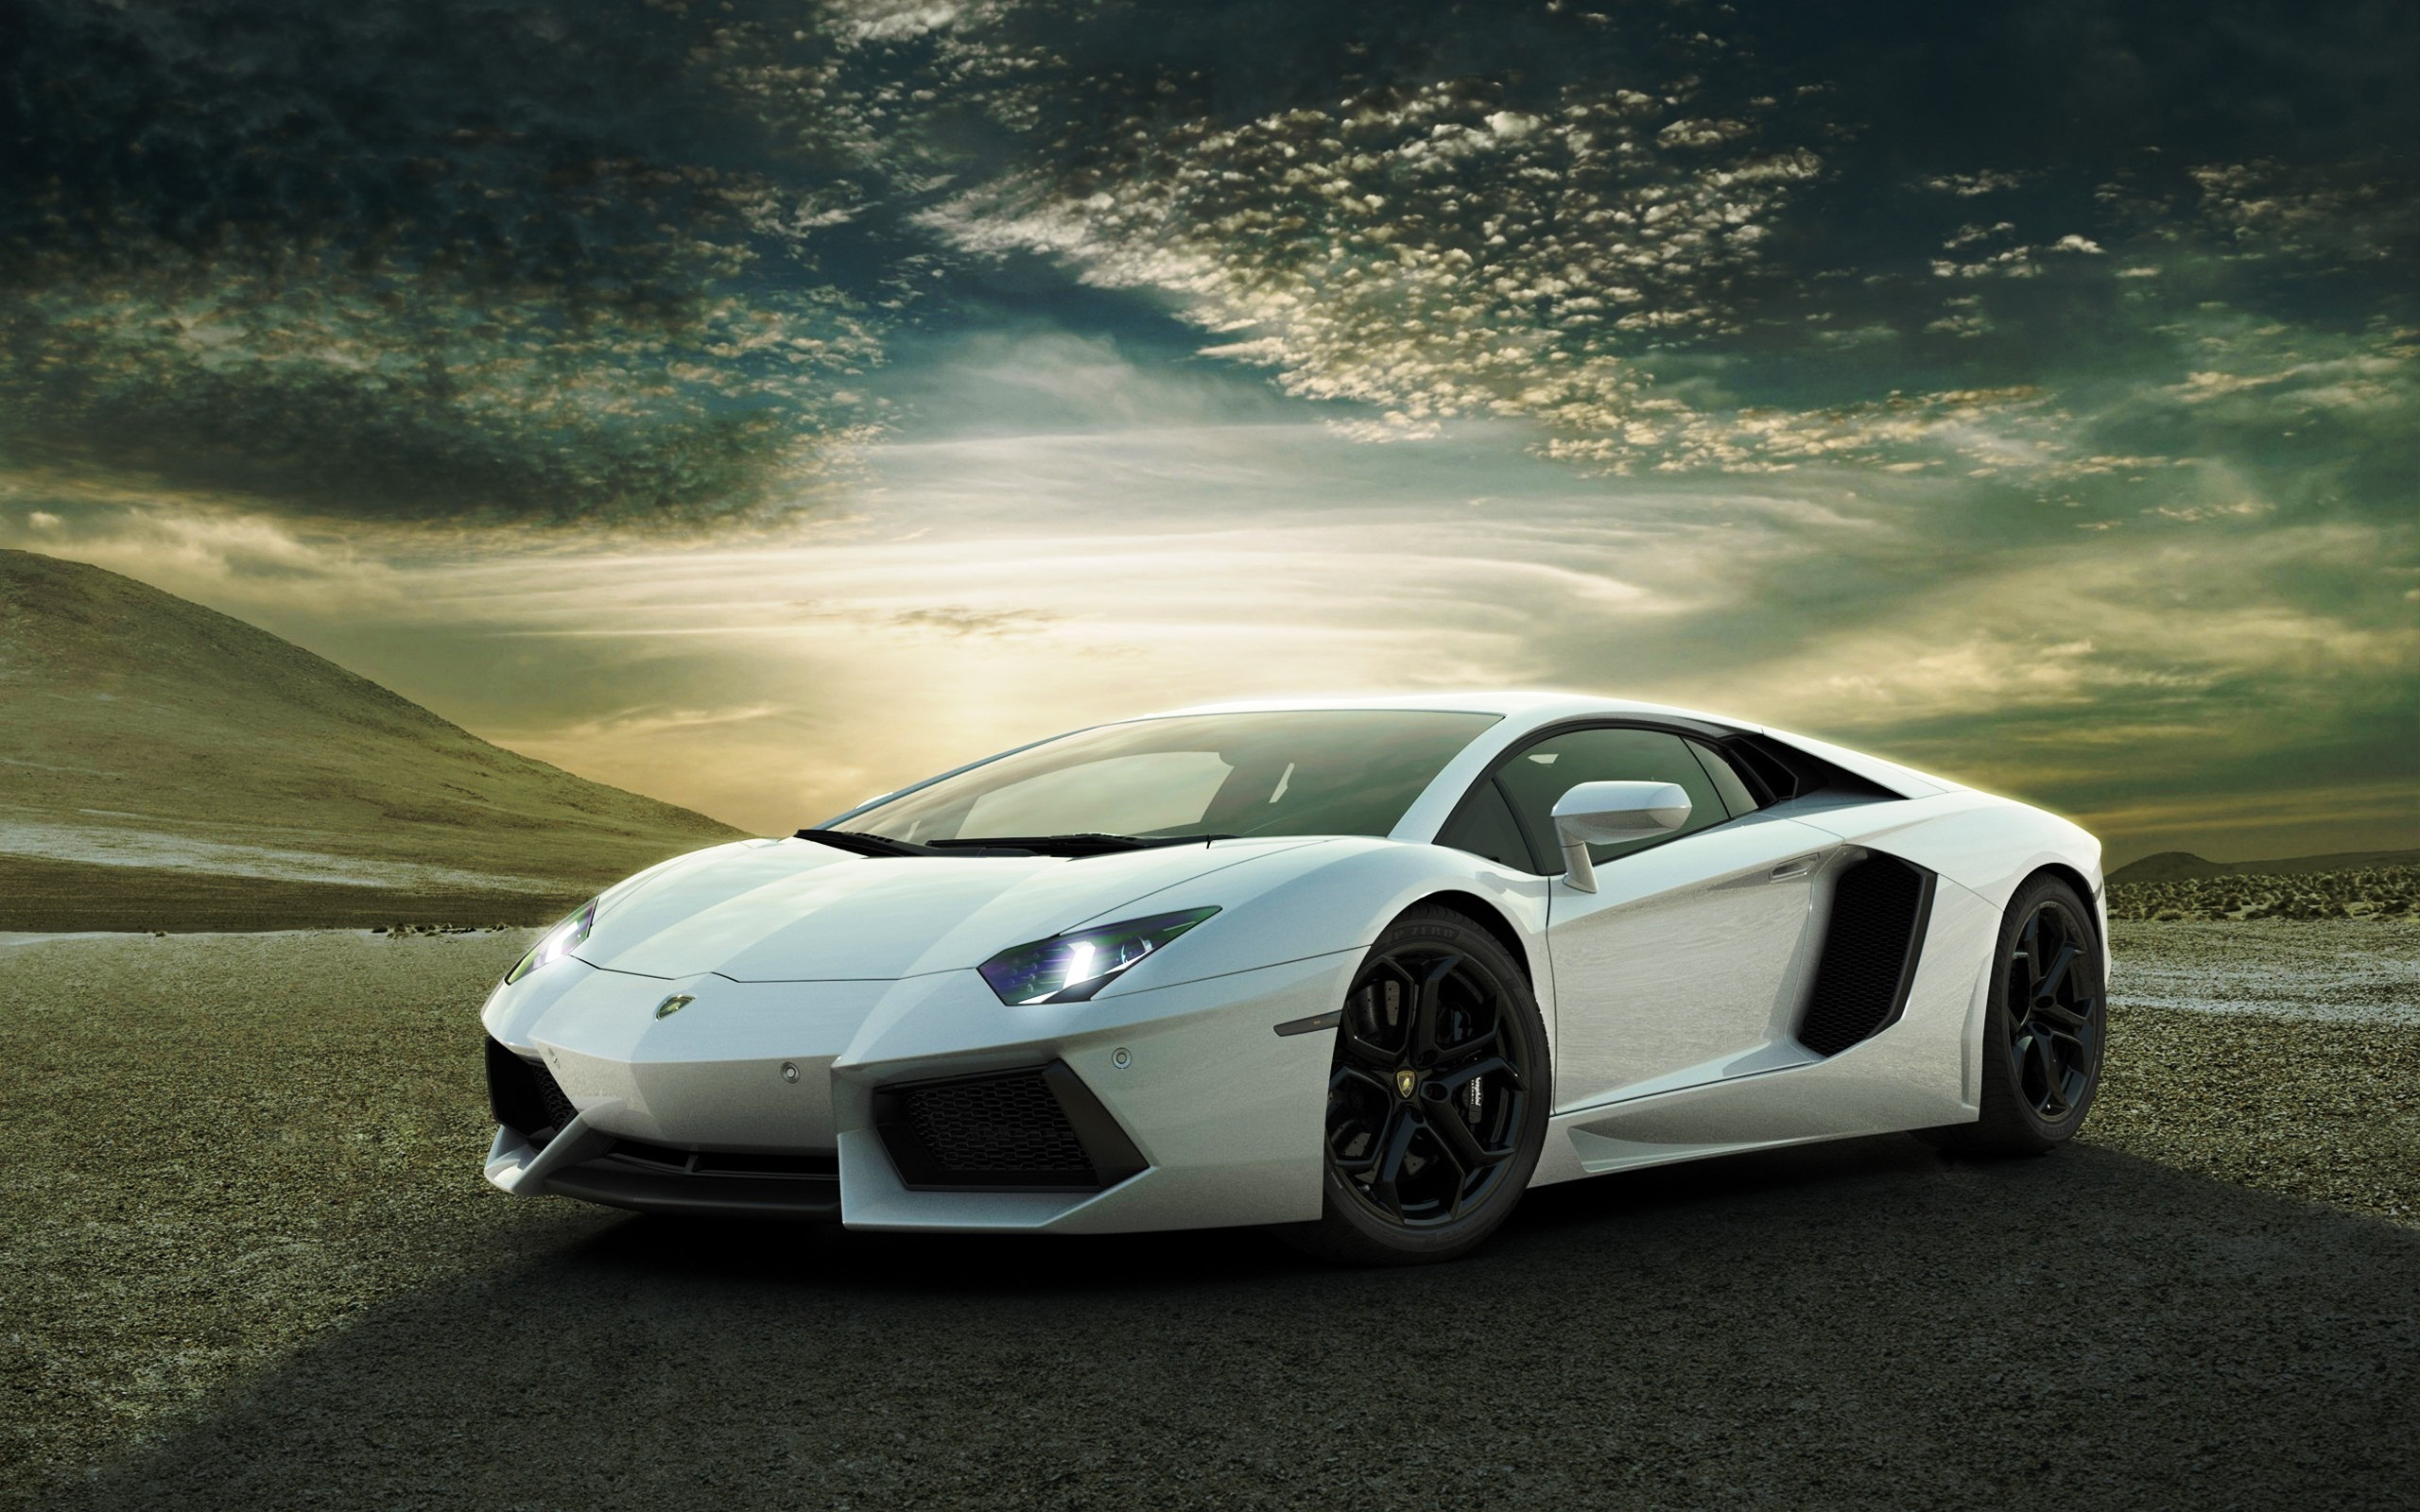 White Lamborghini Aventador Wallpaper Free For Windows